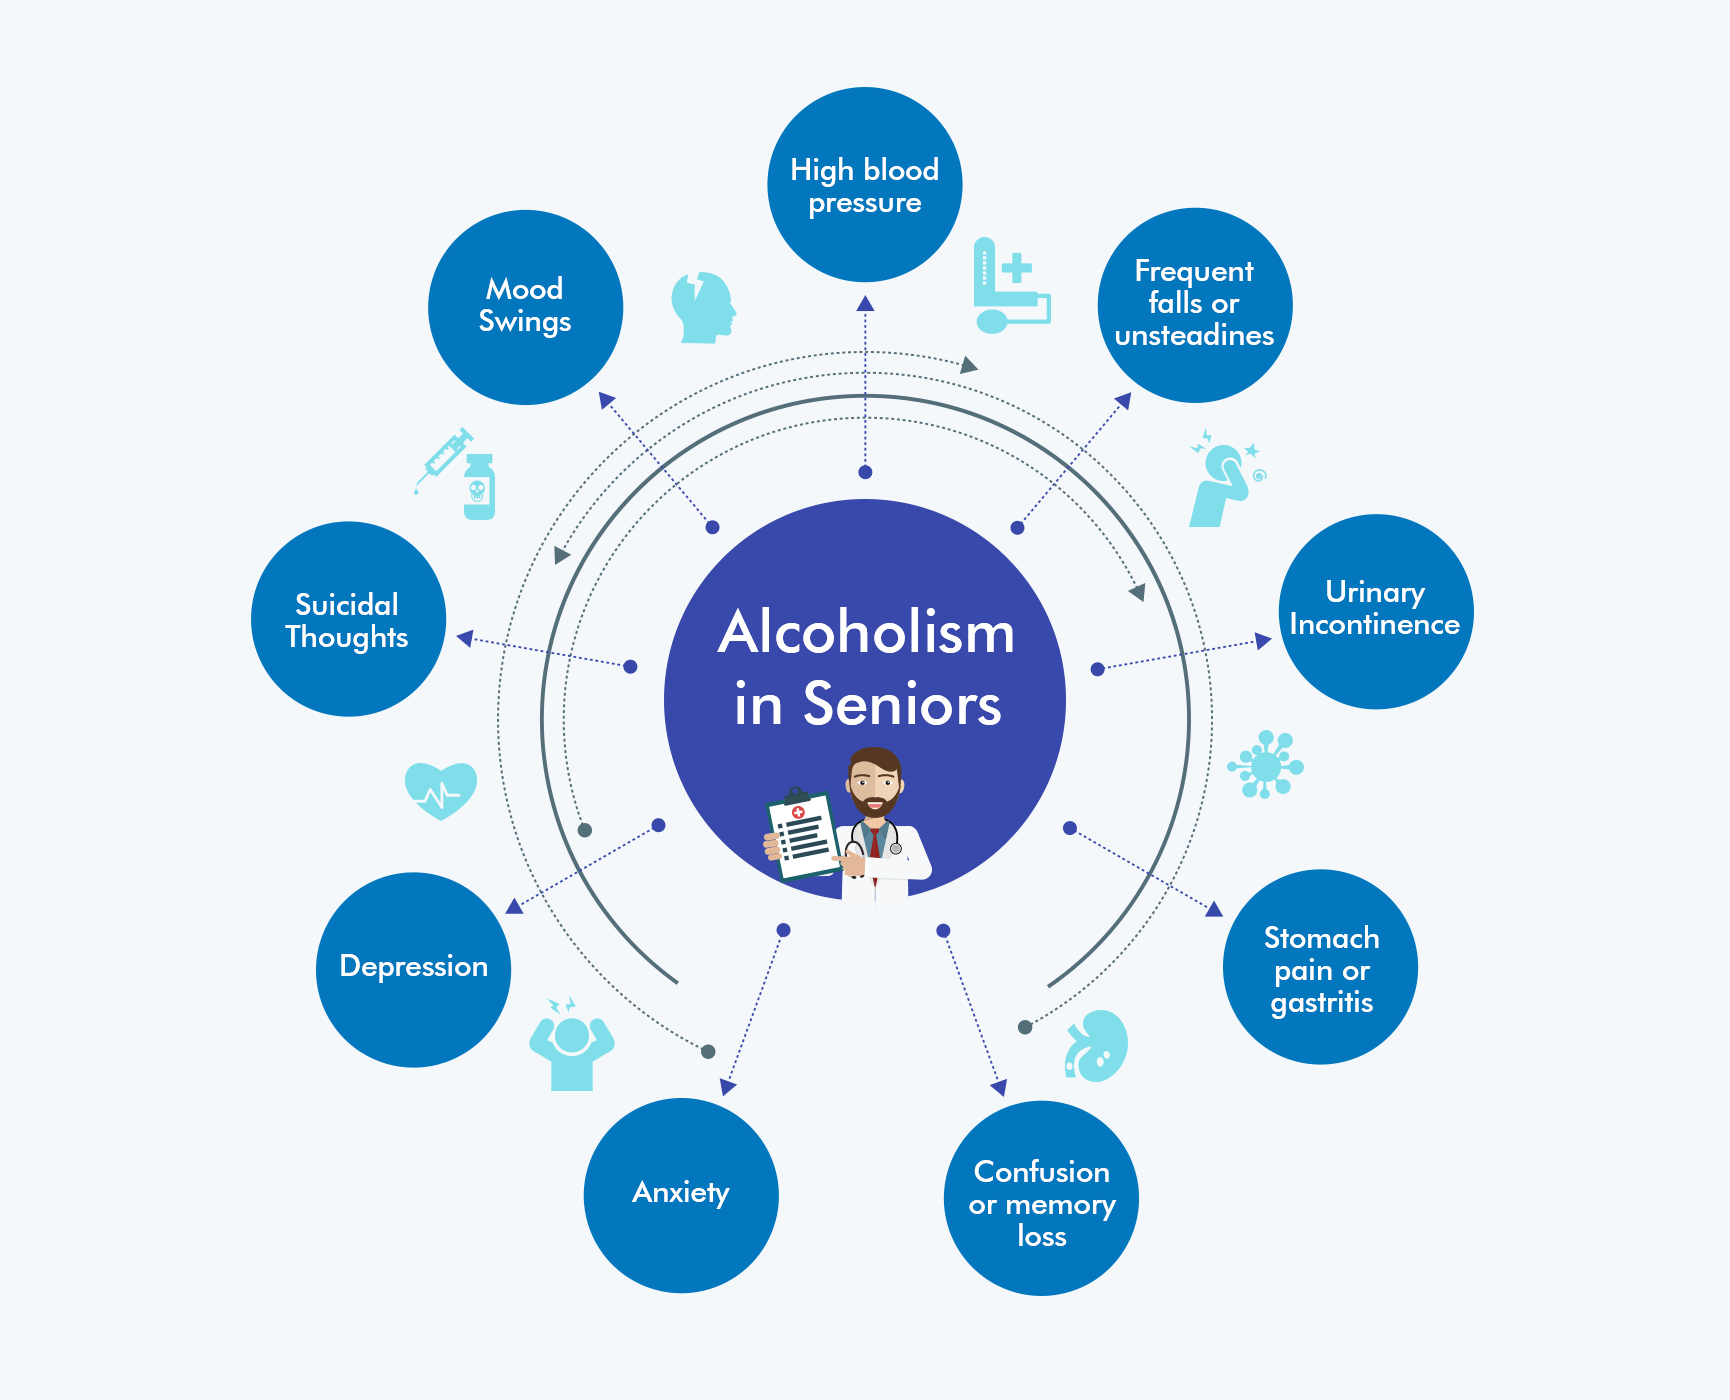 Alcoholism in Seniors Chart